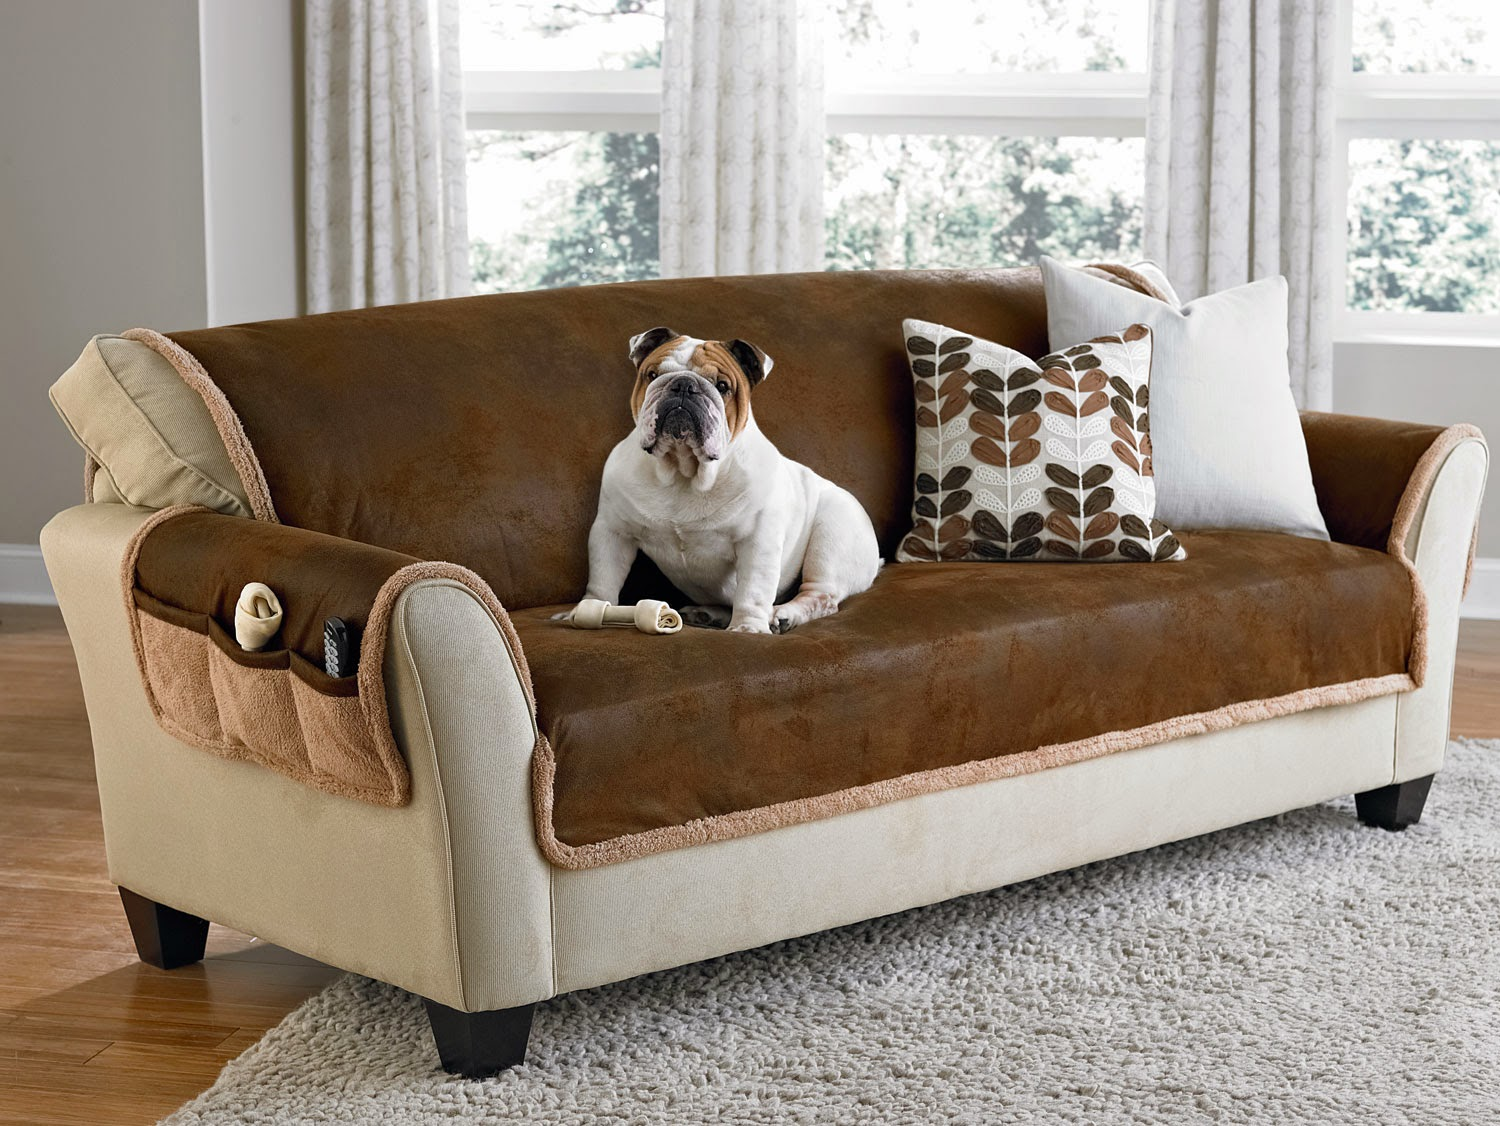 leather sofa dog protector alex sure fit slipcovers 39tis the season of frosty days get